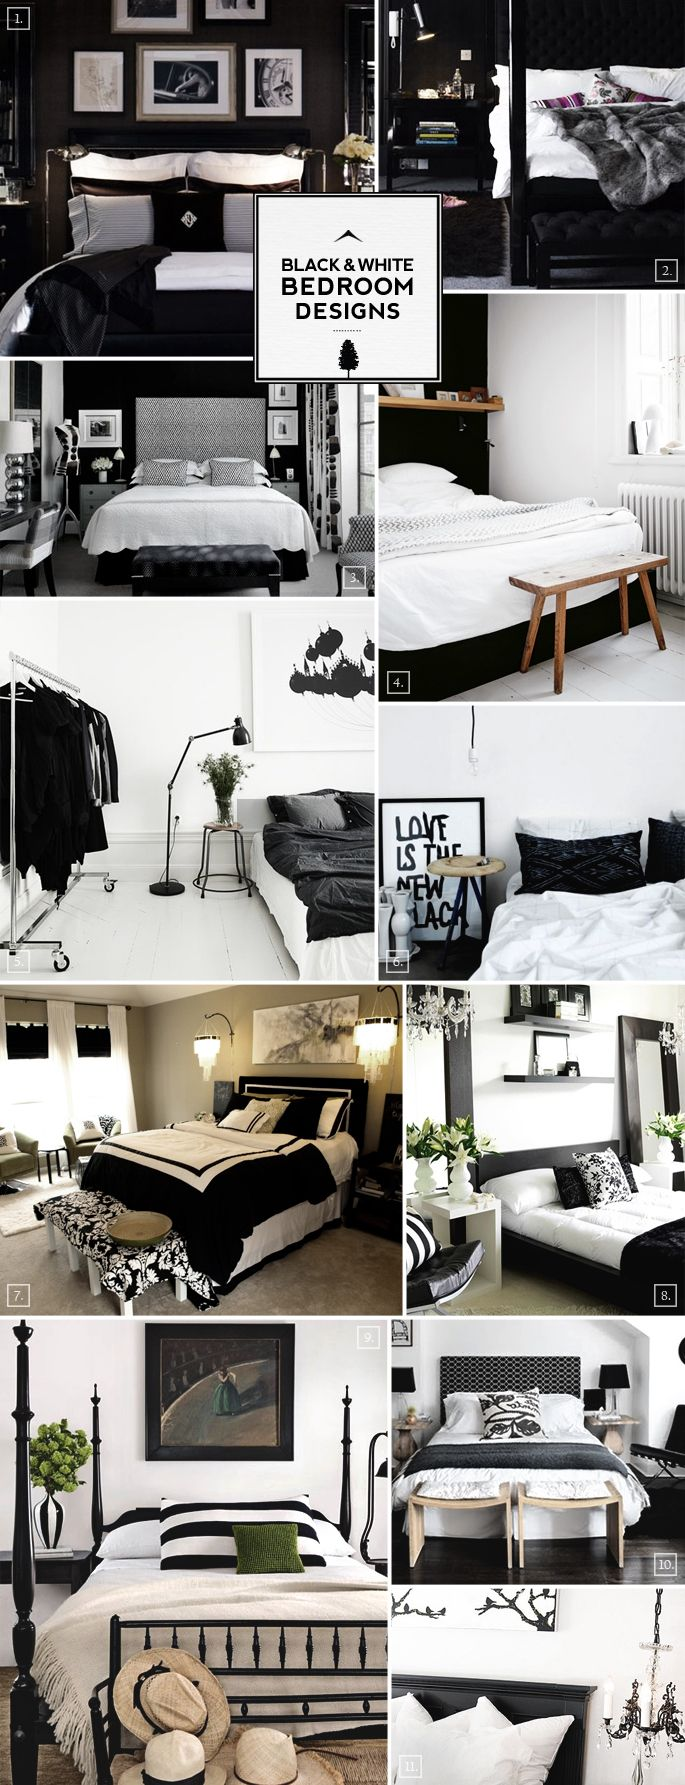 black and white bedroom designs and decor ideas